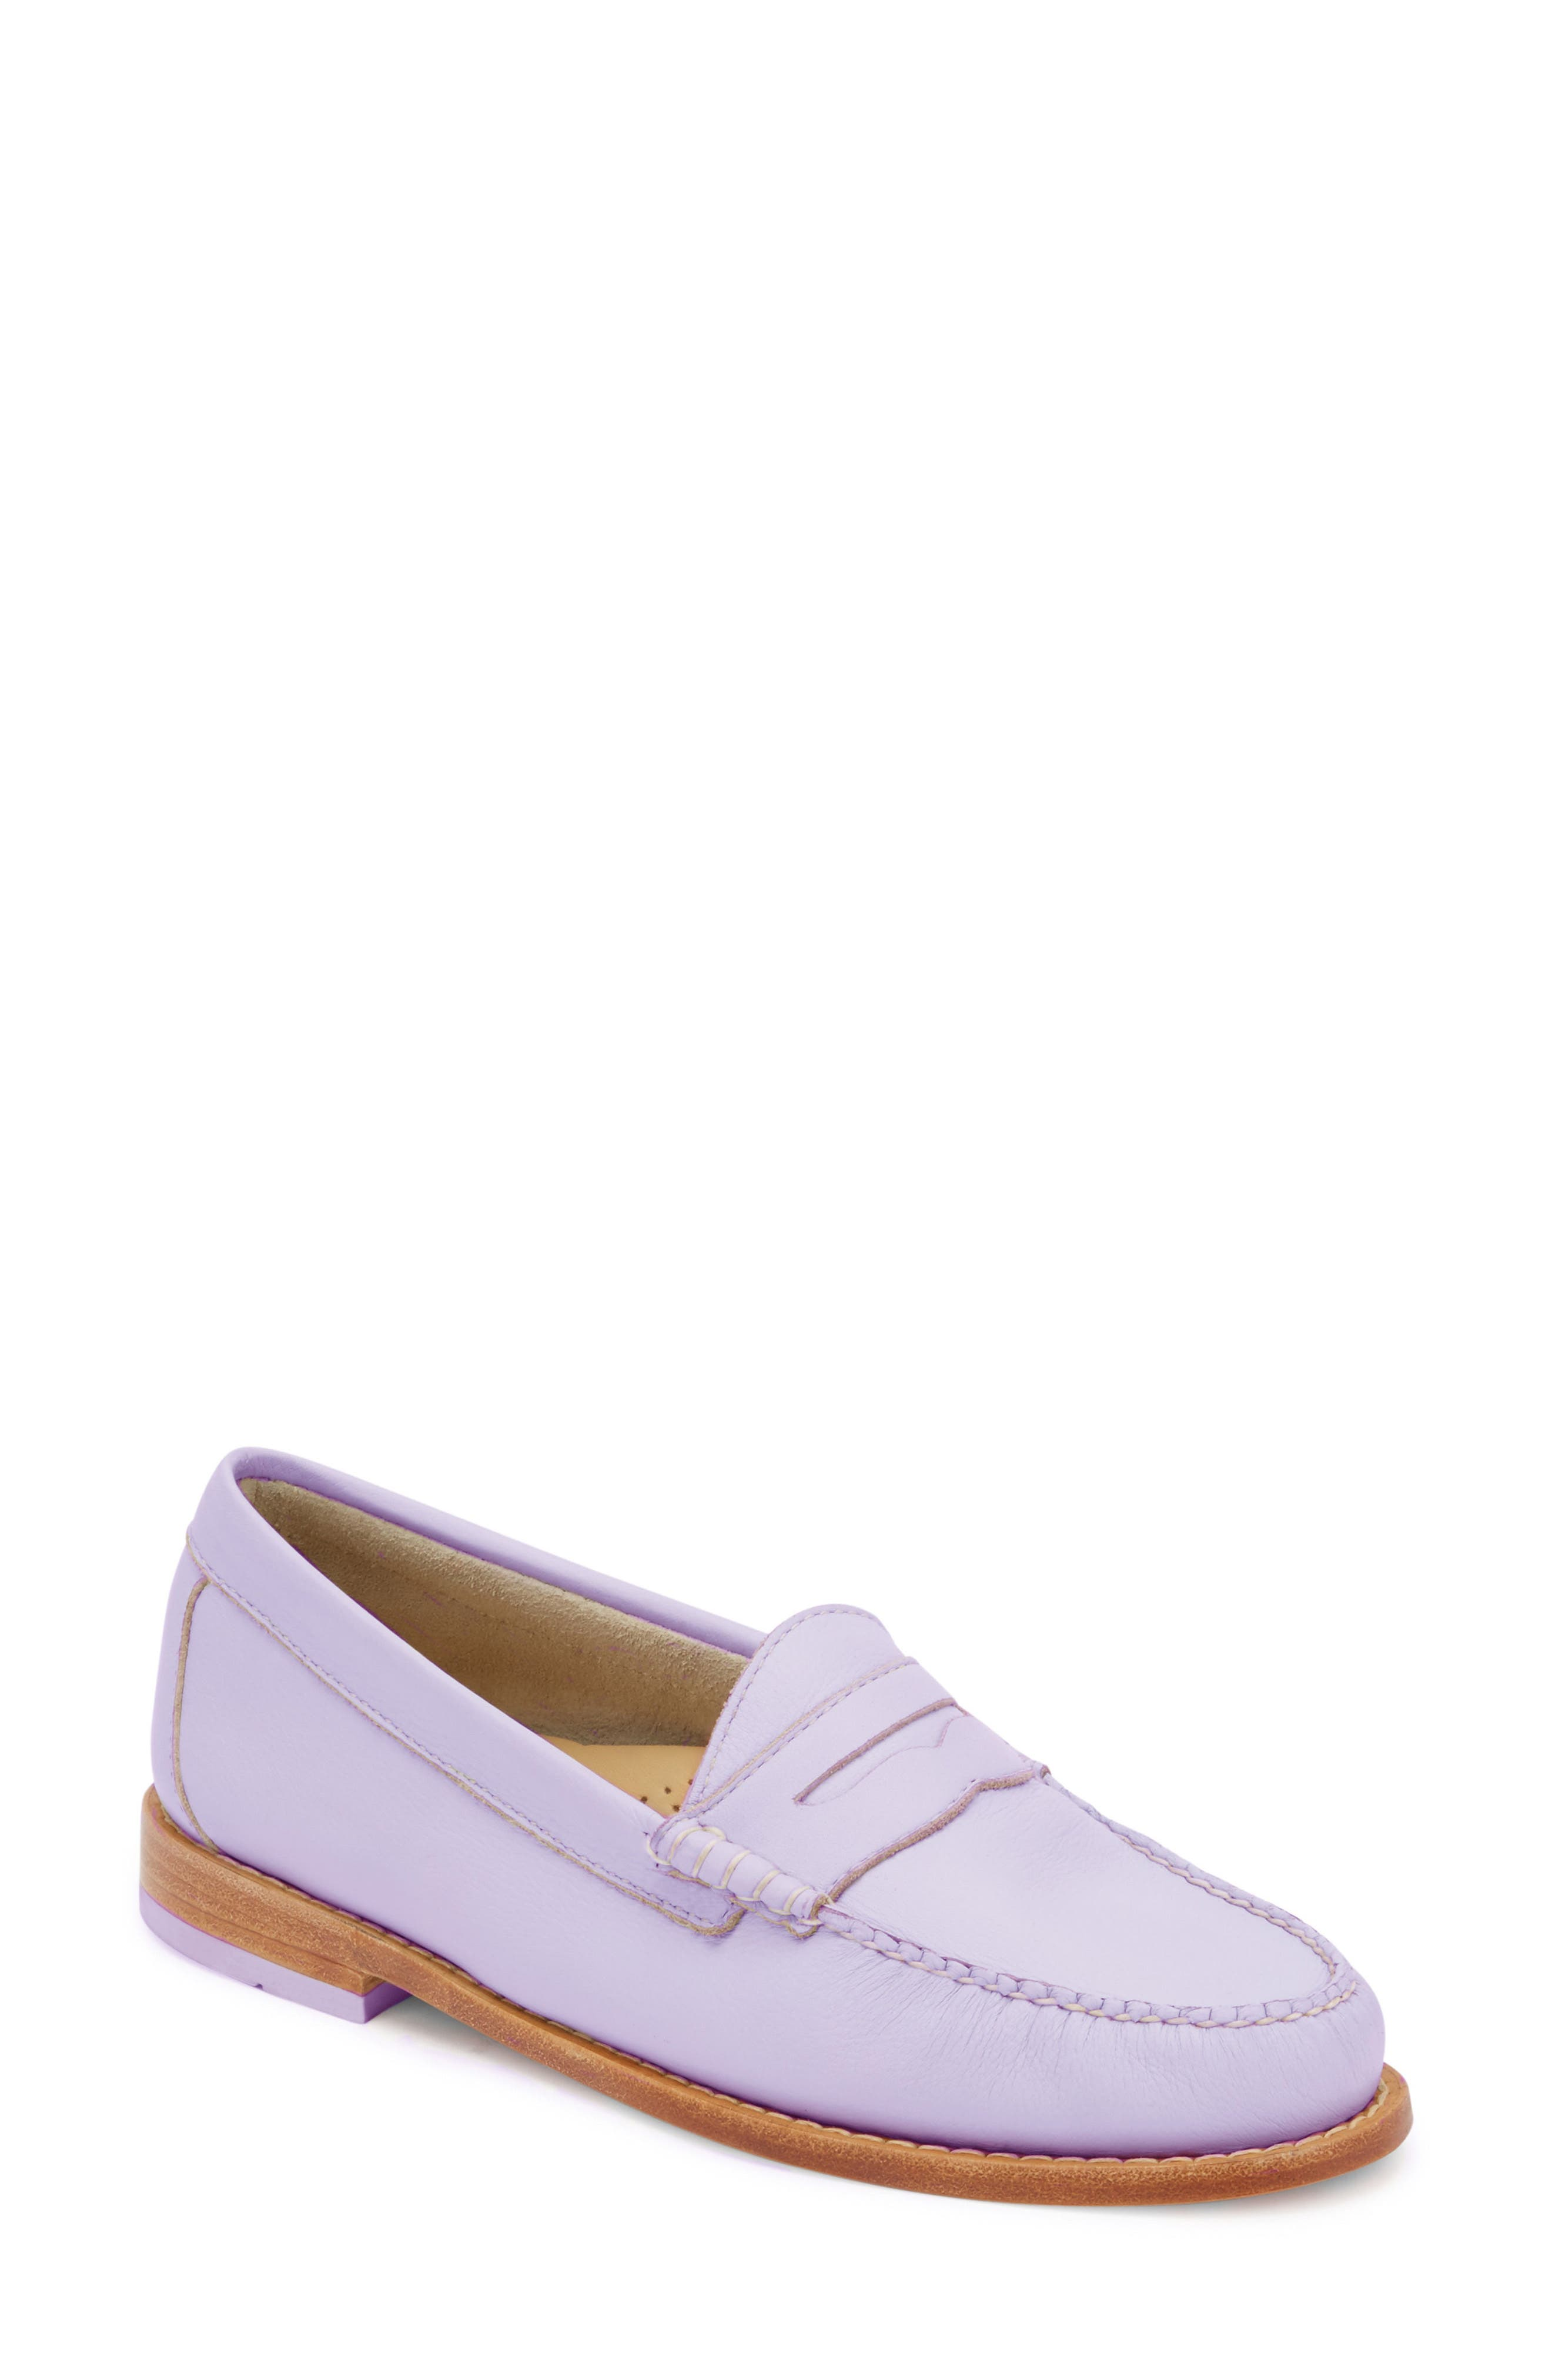 'Whitney' Loafer,                         Main,                         color, Lilac Leather